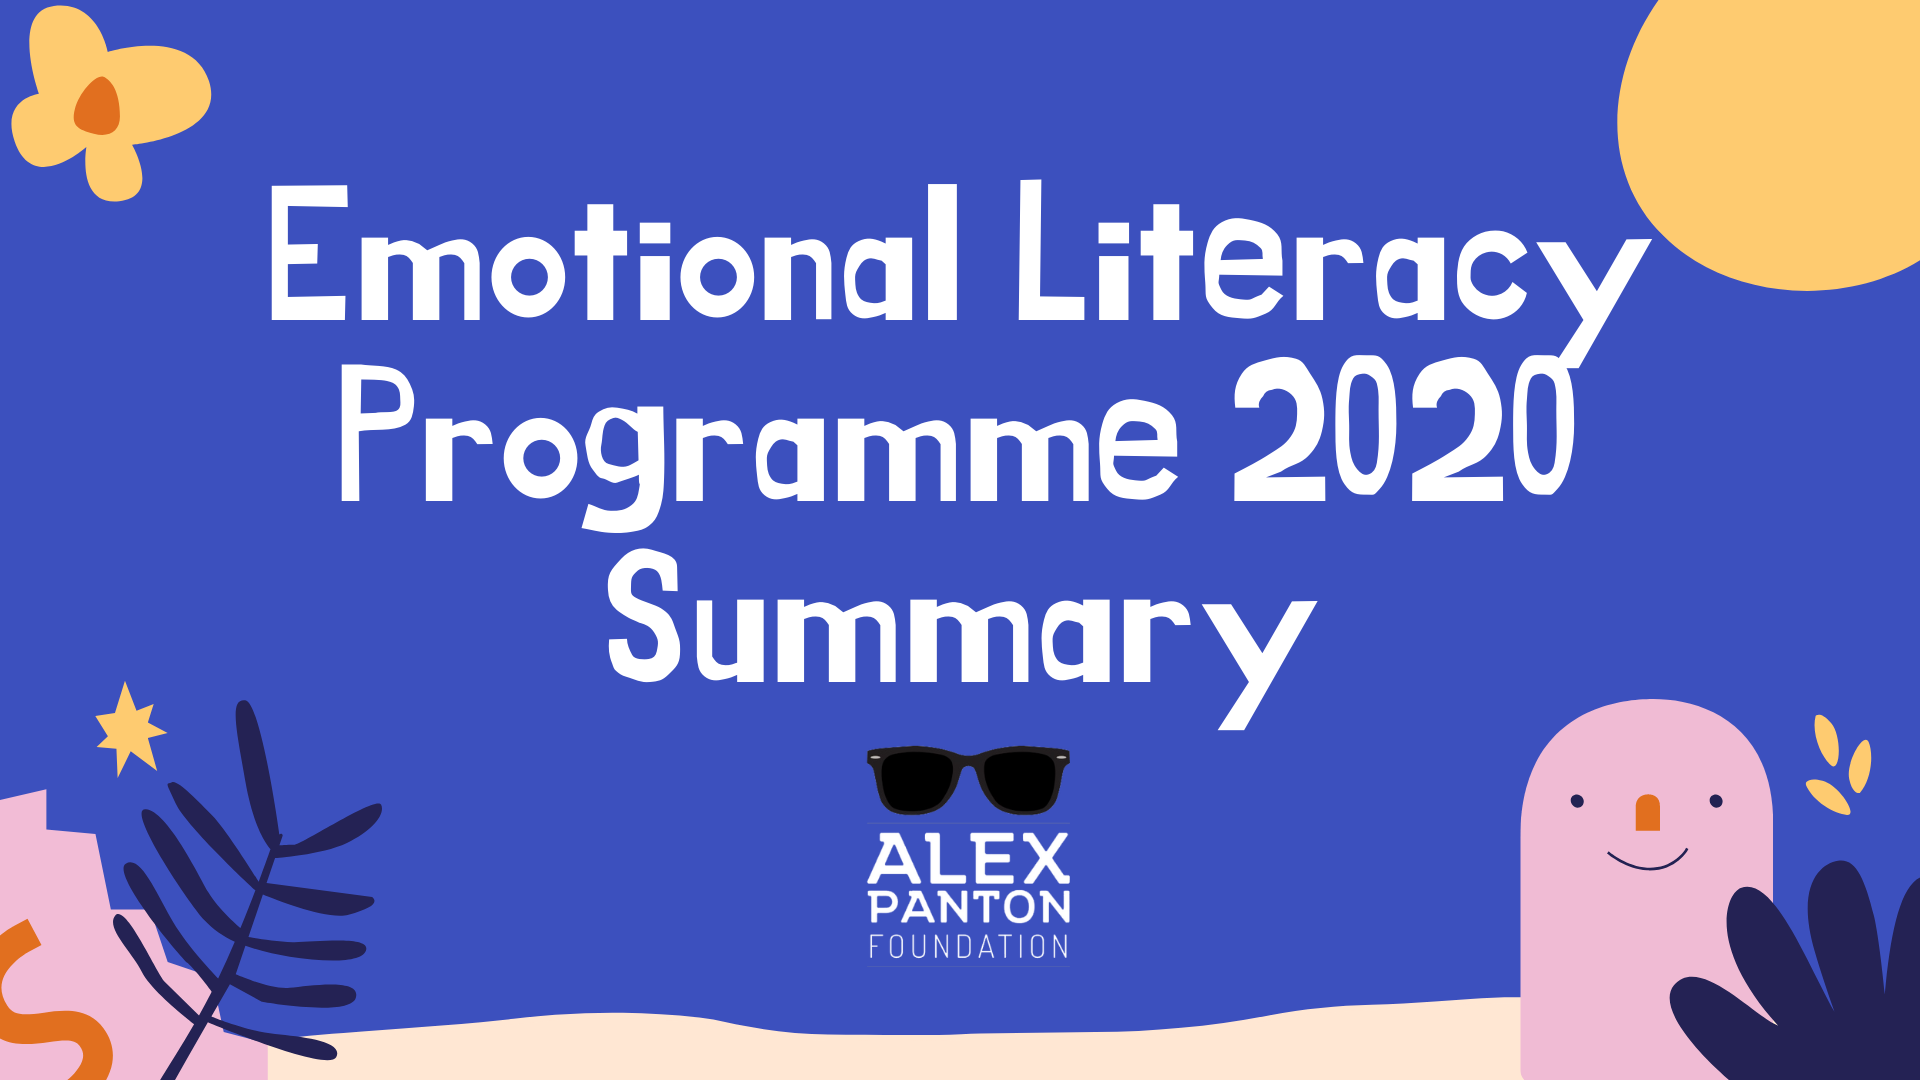 Emotional Literacy Programme 2020 Summary